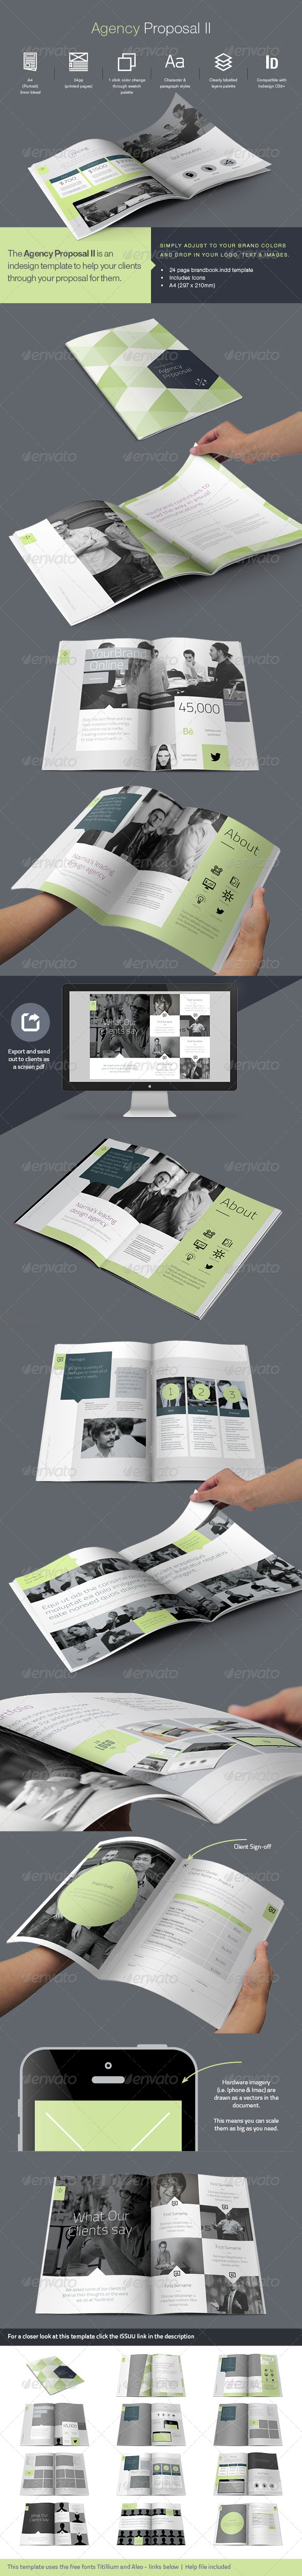 GraphicRiver Agency Proposal II 6983375